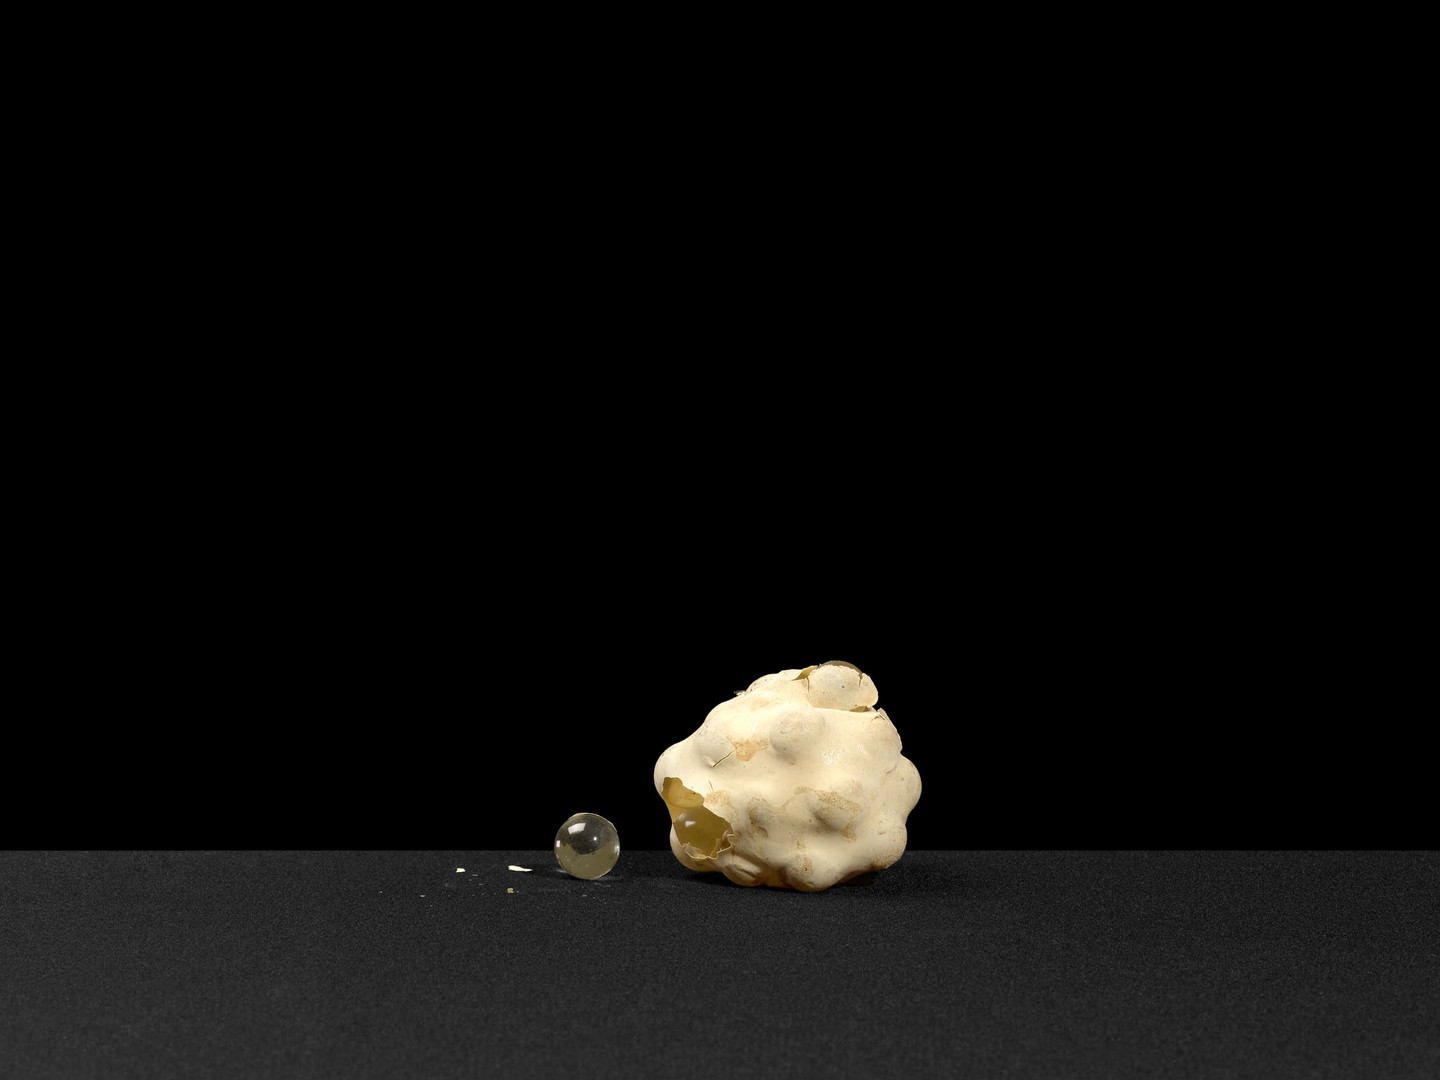 A third example of the marbles in balloons. These are, by far, the most fragile models still extant in the Pauling Papers